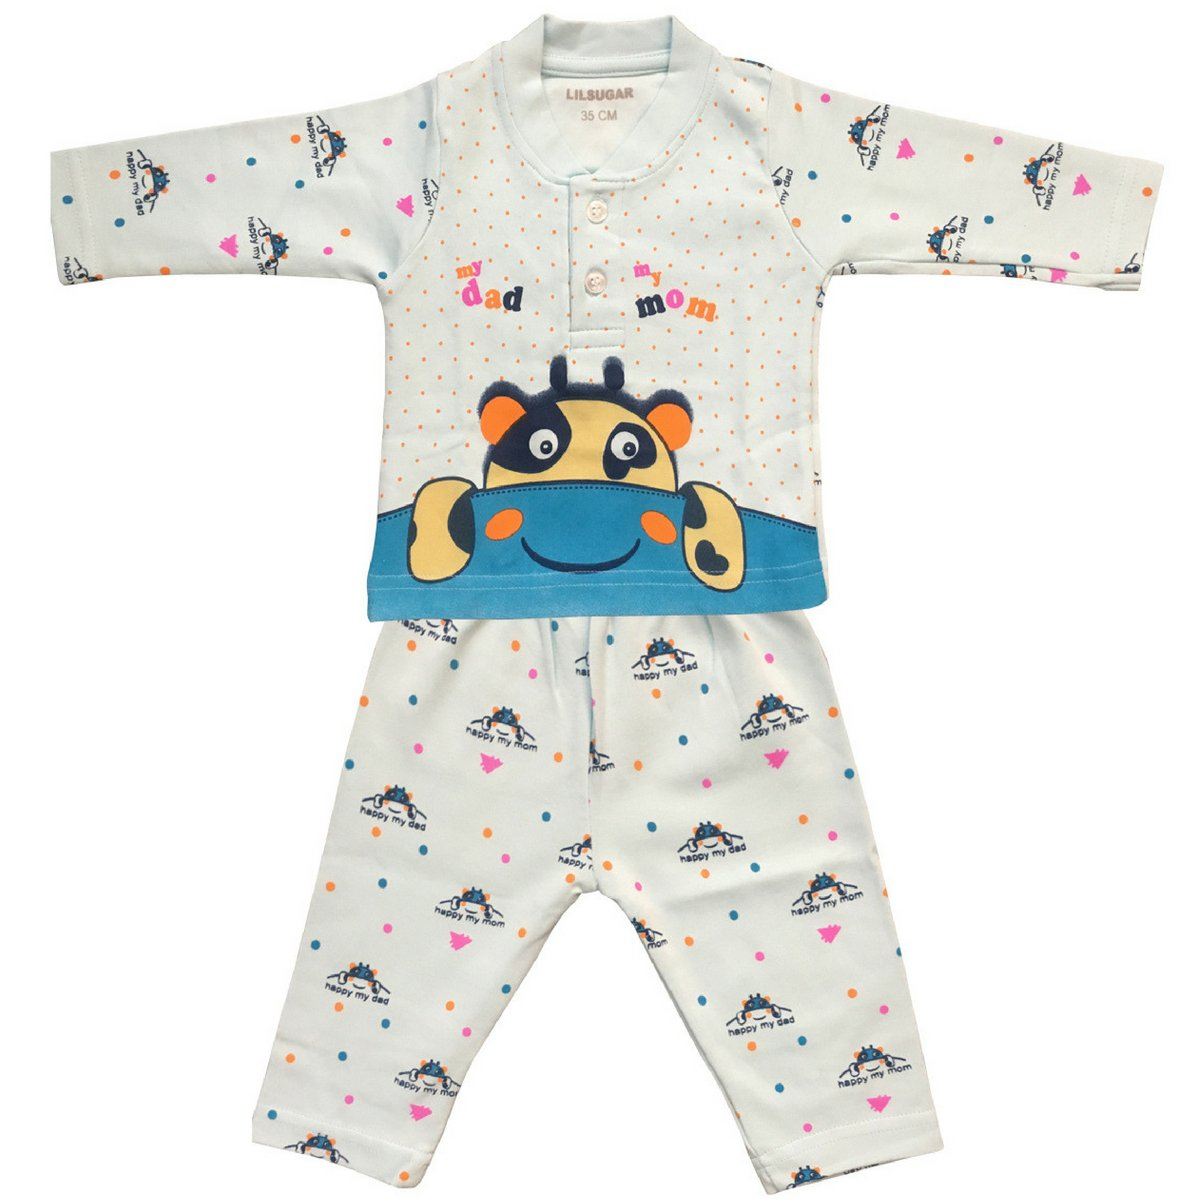 0e533666c3b1 Lilsugar Baby Boys Full Sleeves Night Suit - Infants Full Sleeves ...